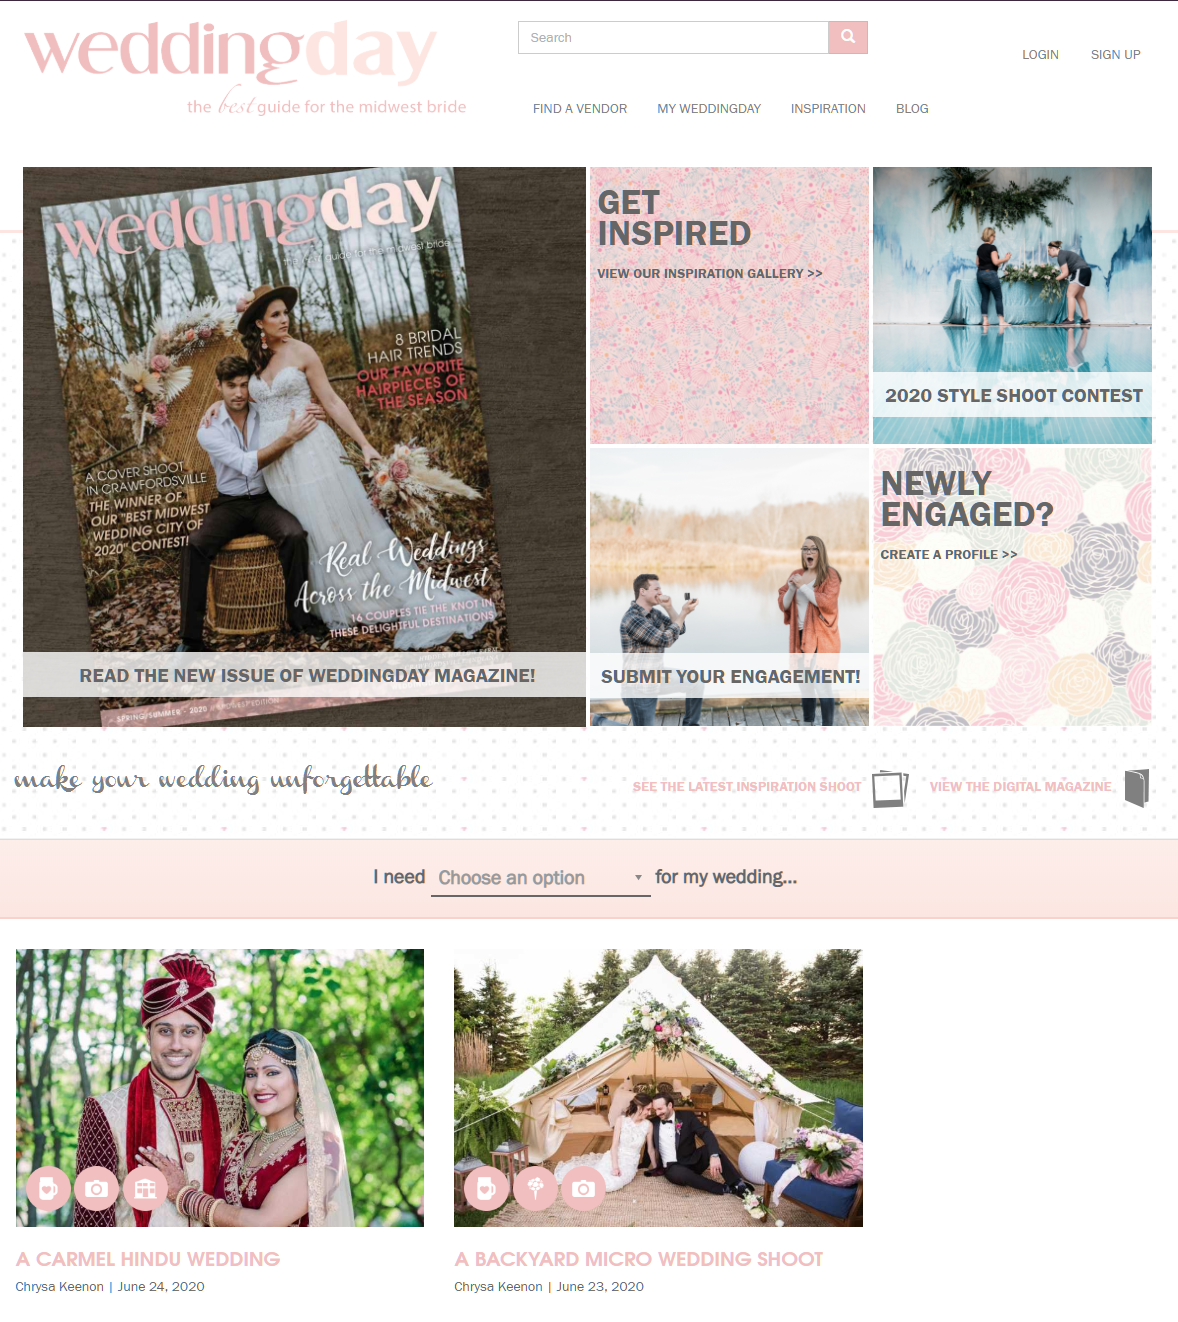 DARS Photography FEATURED BY WEDDING DAY MAGAZINE